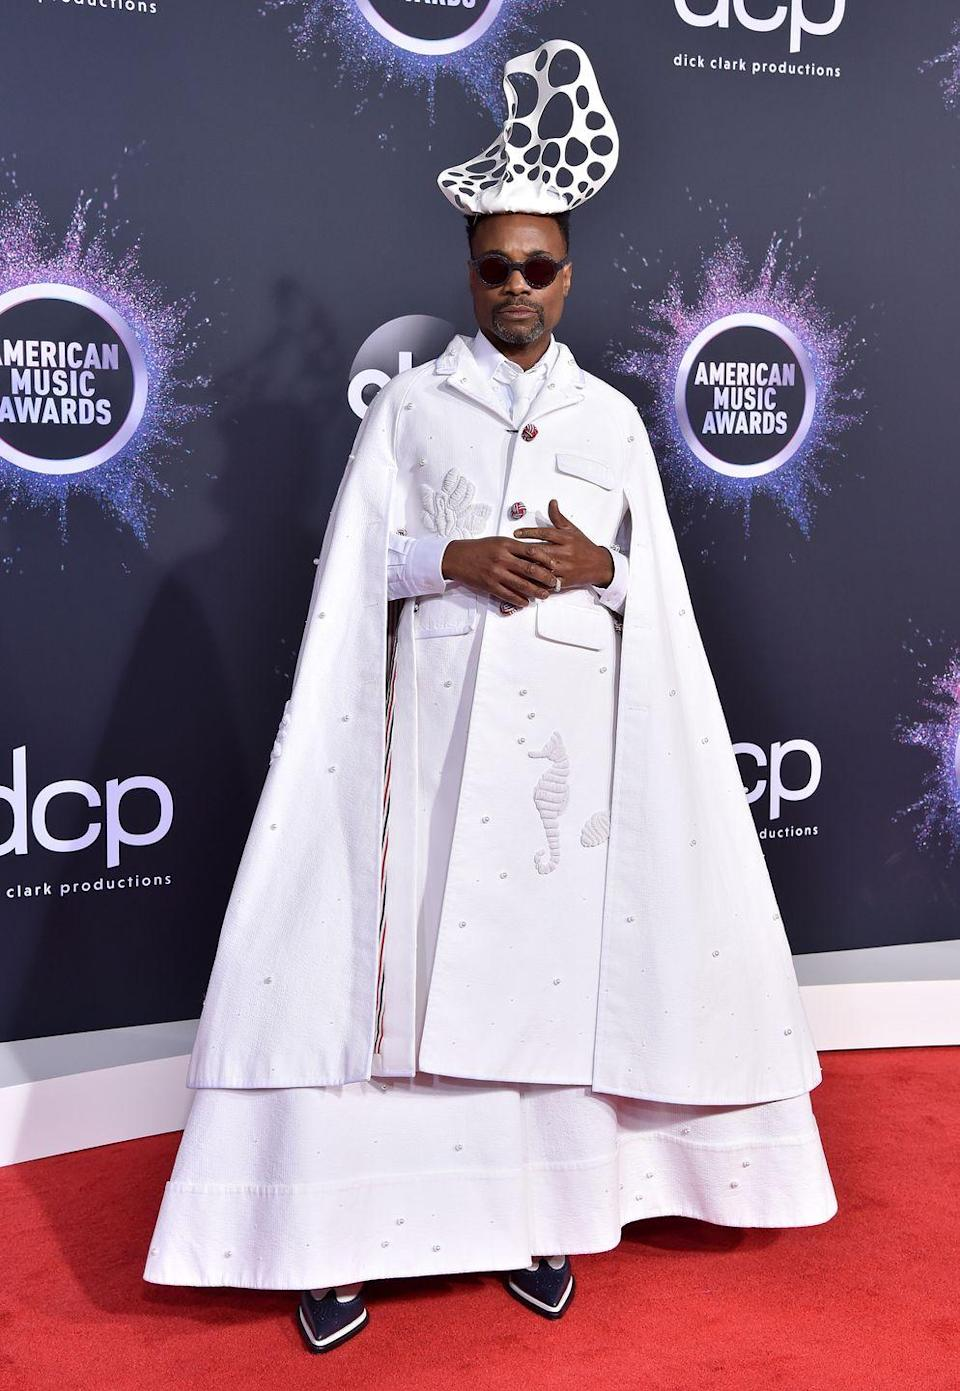 """<p>For the AMAs, Porter wore a Thom Browne SS20 menswear white coat, cape and gown, with a Stephen Jones Millinery headpiece and Oscar Heyman ring.</p><p>The star later <a href=""""https://twitter.com/theebillyporter/status/1198787046174646273?ref_src=twsrc%5Etfw%7Ctwcamp%5Etweetembed%7Ctwterm%5E1198787046174646273&ref_url=https%3A%2F%2Fabc7news.com%2F5716911"""" rel=""""nofollow noopener"""" target=""""_blank"""" data-ylk=""""slk:tweeted"""" class=""""link rapid-noclick-resp"""">tweeted</a> that the look had 'hints of red, white and blue because I'm an American' and introduced Camila Cabello on the night by saying: 'Understated. Low-key. Restrained.</p><p>'That is not how I approach the roles I play or the red carpet. Look at me, I'm an entire mood!'</p>"""